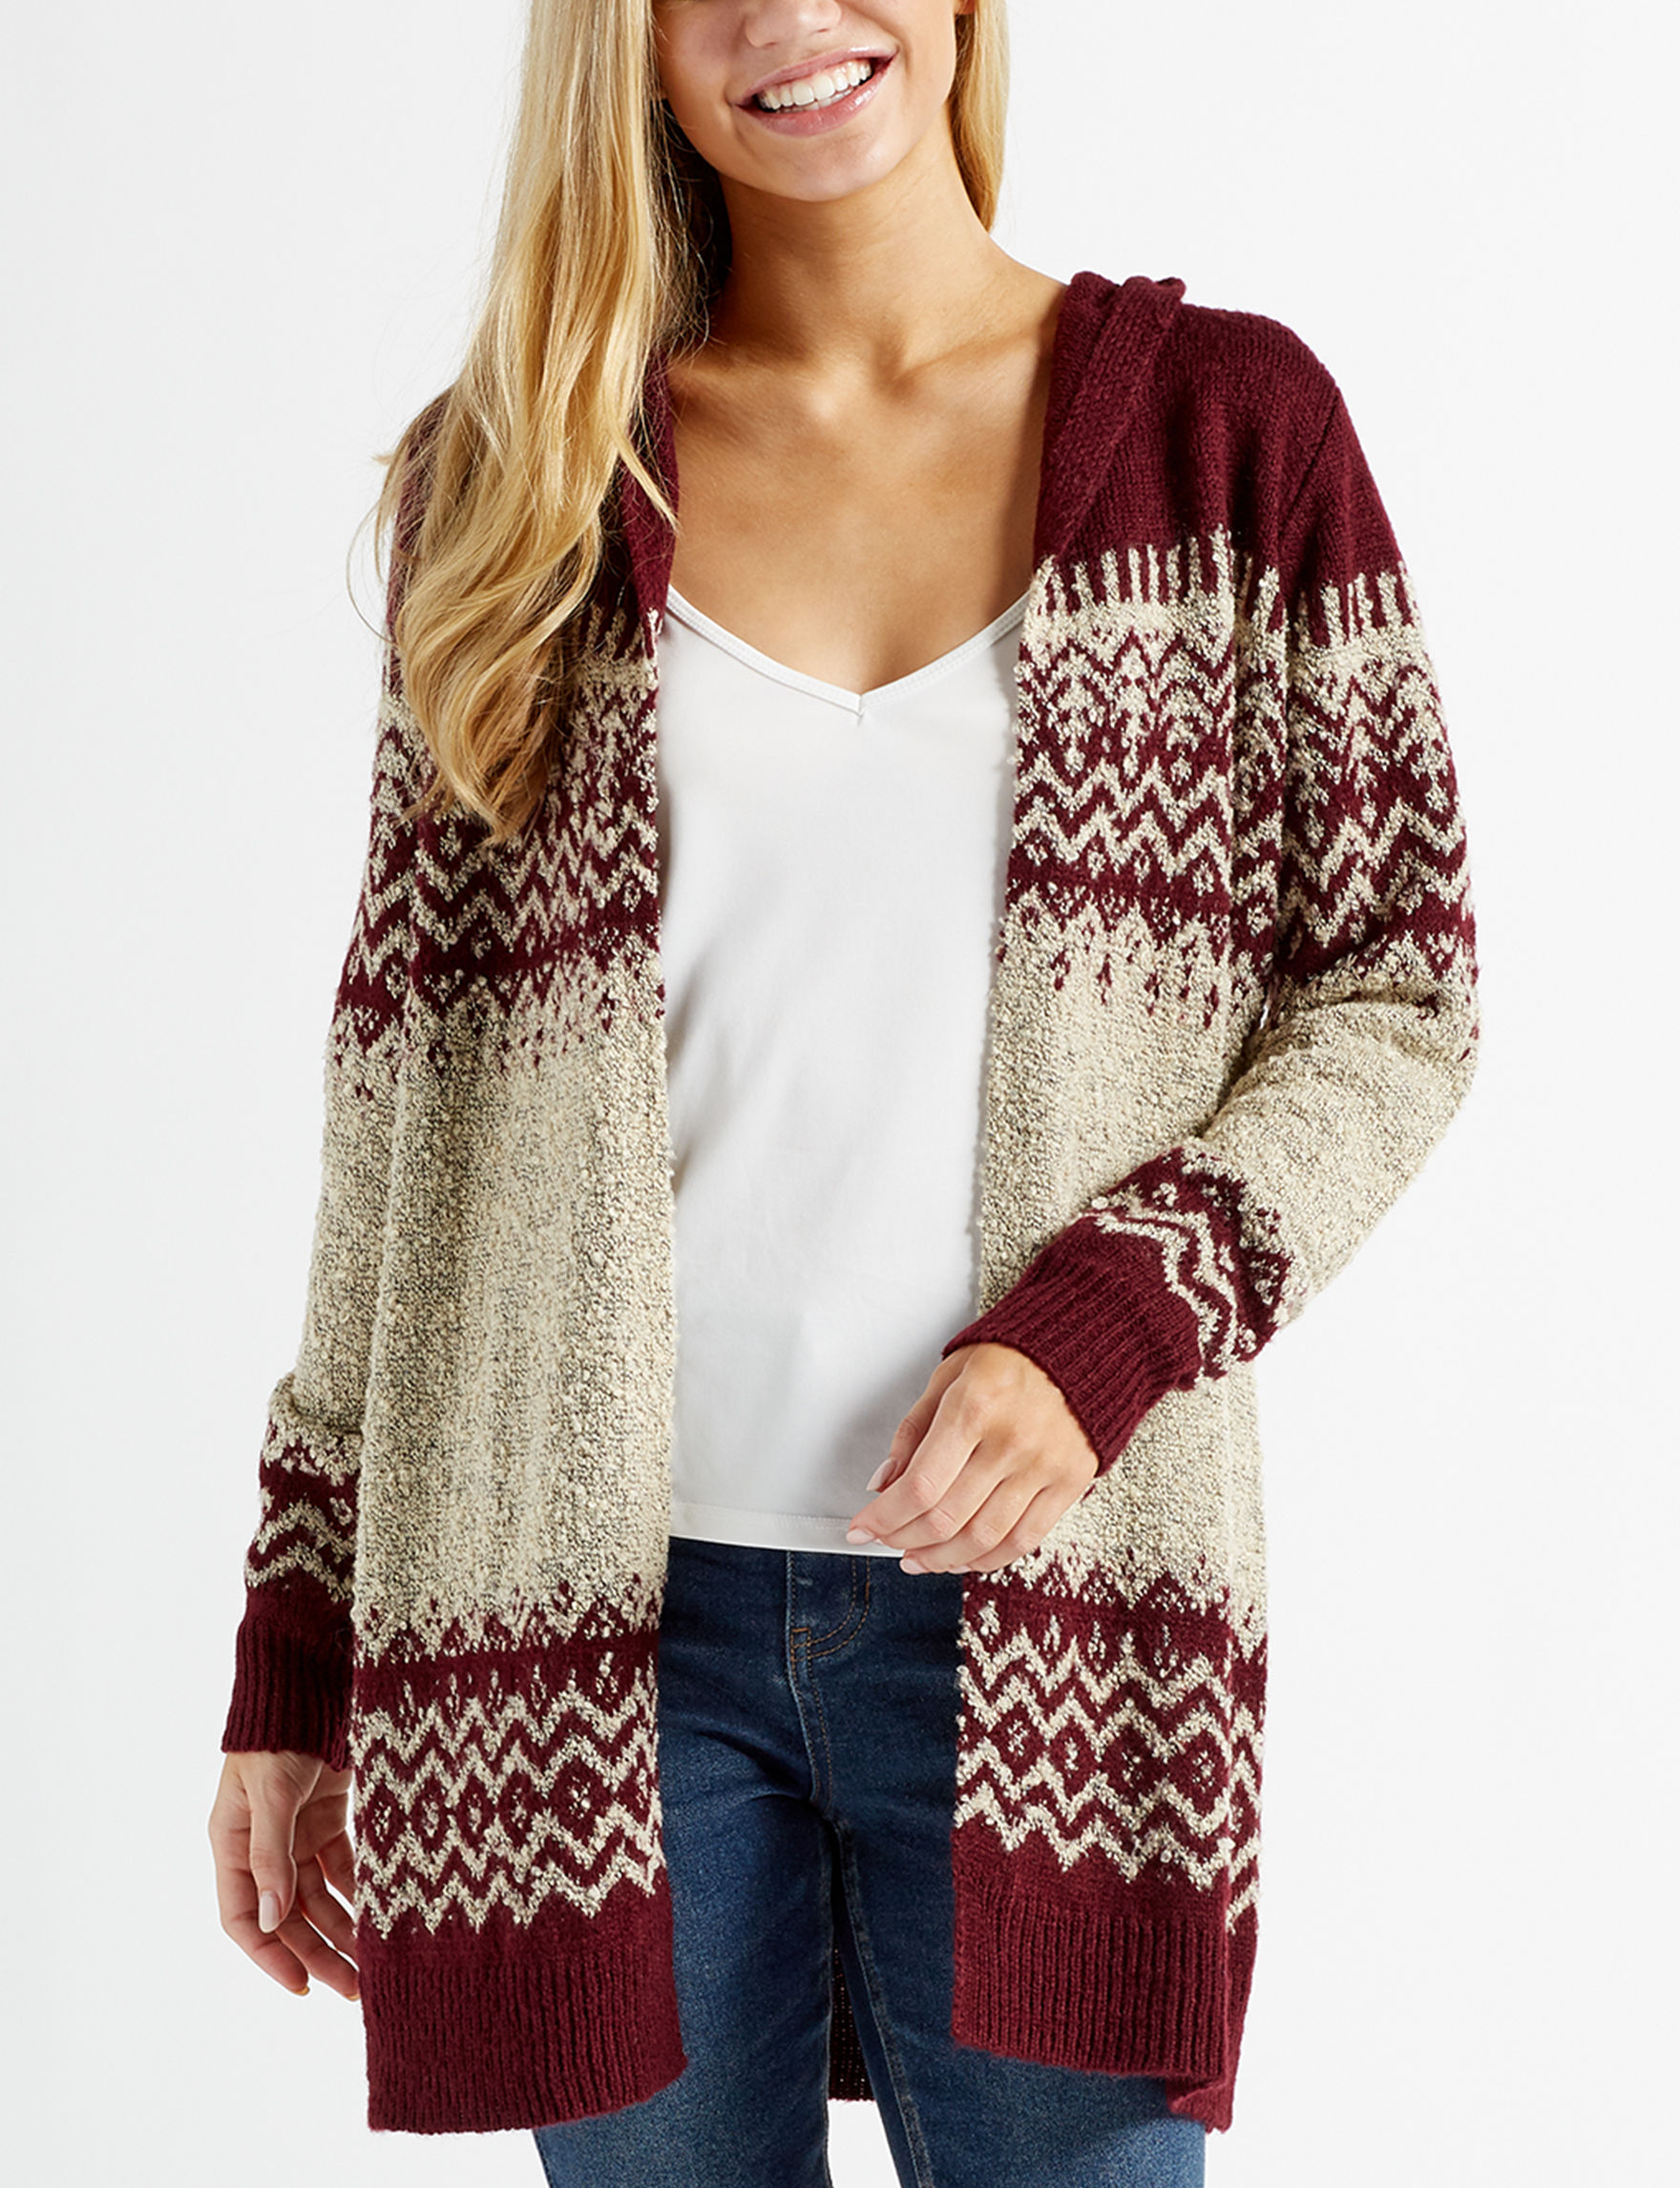 It's Our Time Beige / Burgundy Cardigans